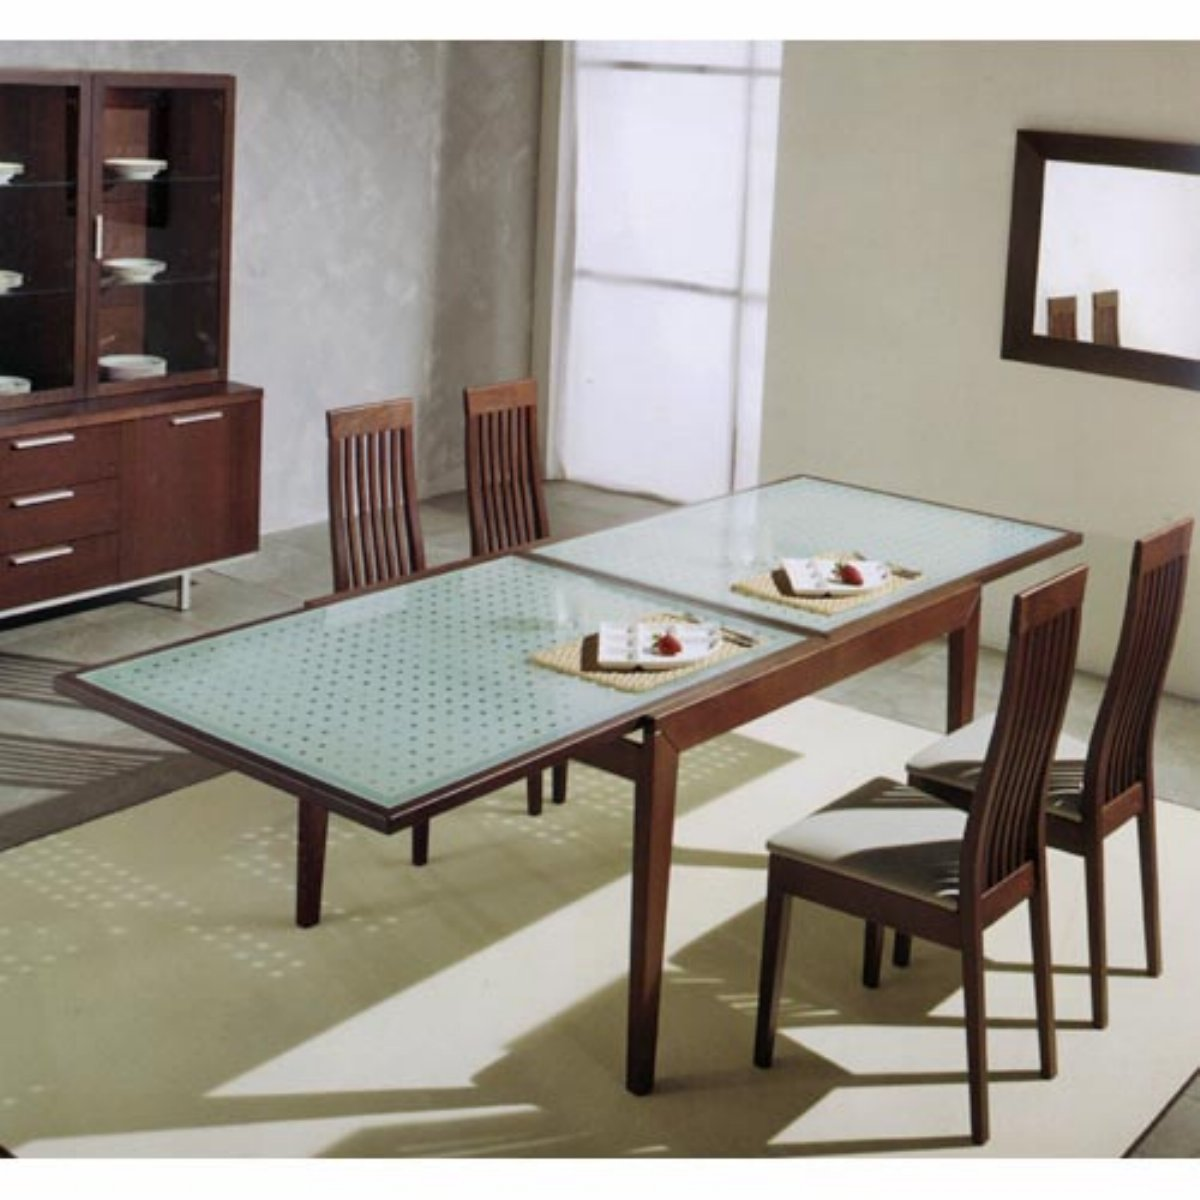 Extendable glass top dining table decor ideasdecor ideas for Dining room table top ideas